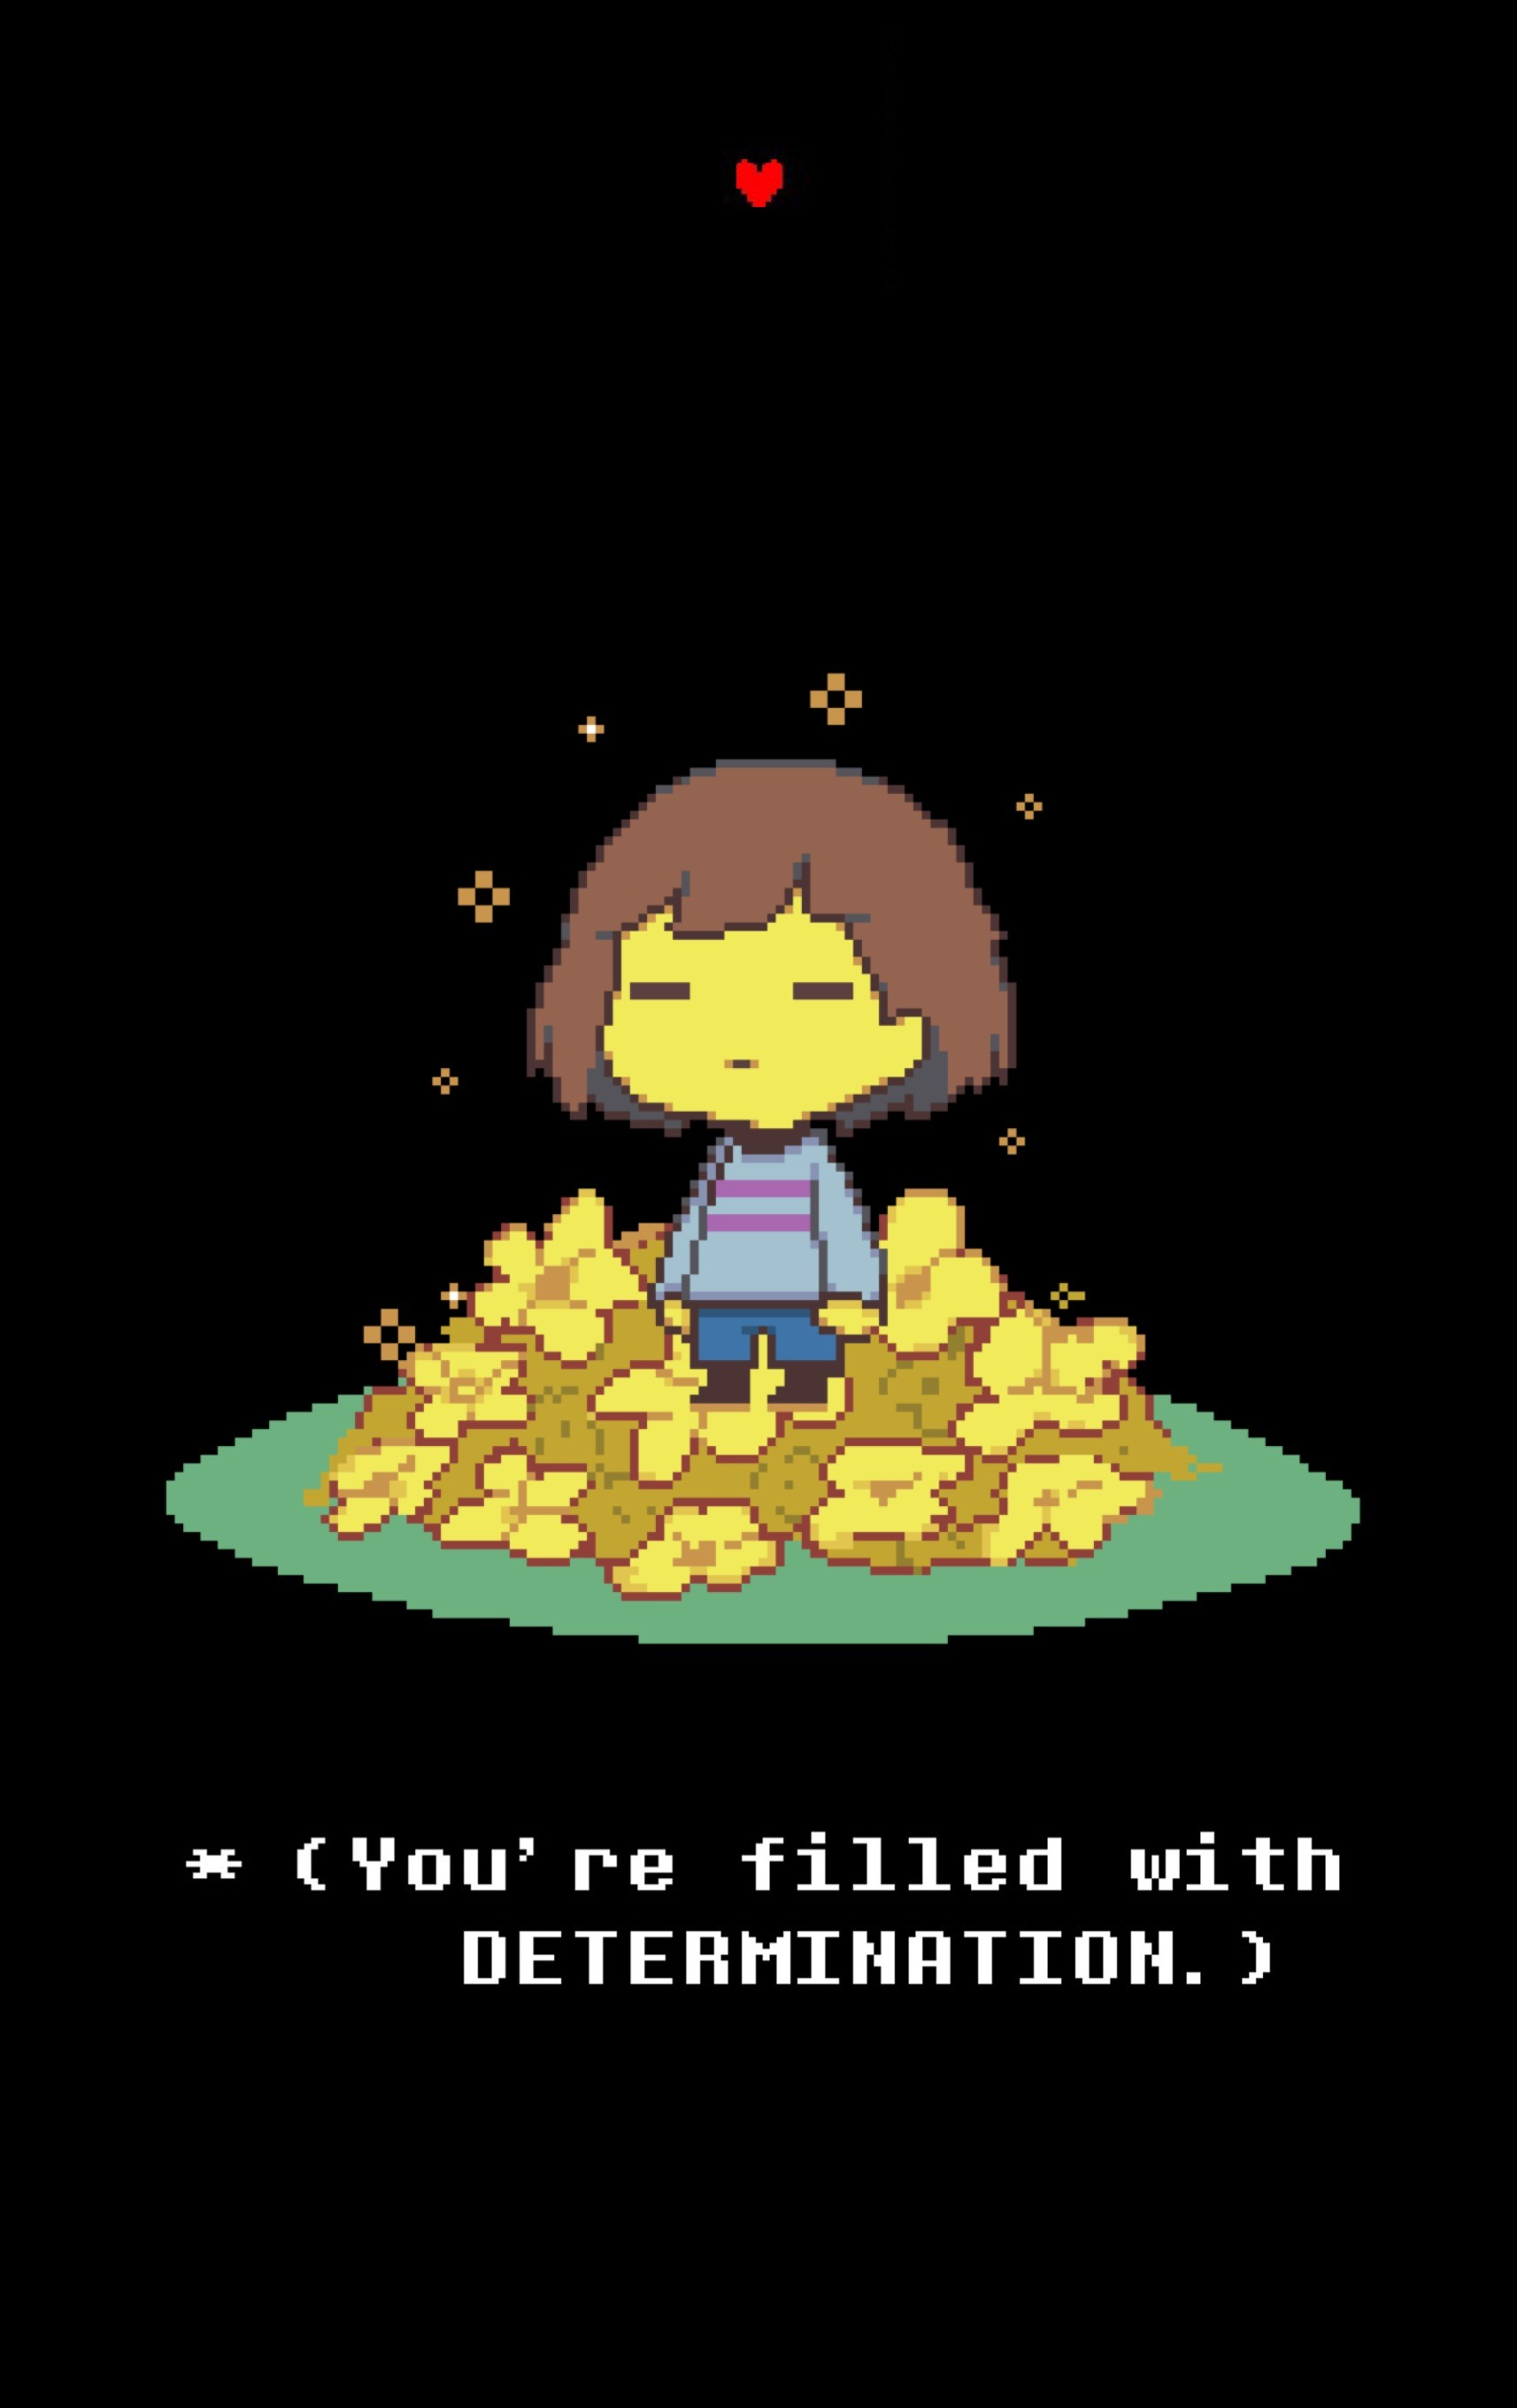 Cute Undertale Determination Wallpapers Undertale Phone Wallpaper 183 ① Download Free Backgrounds For